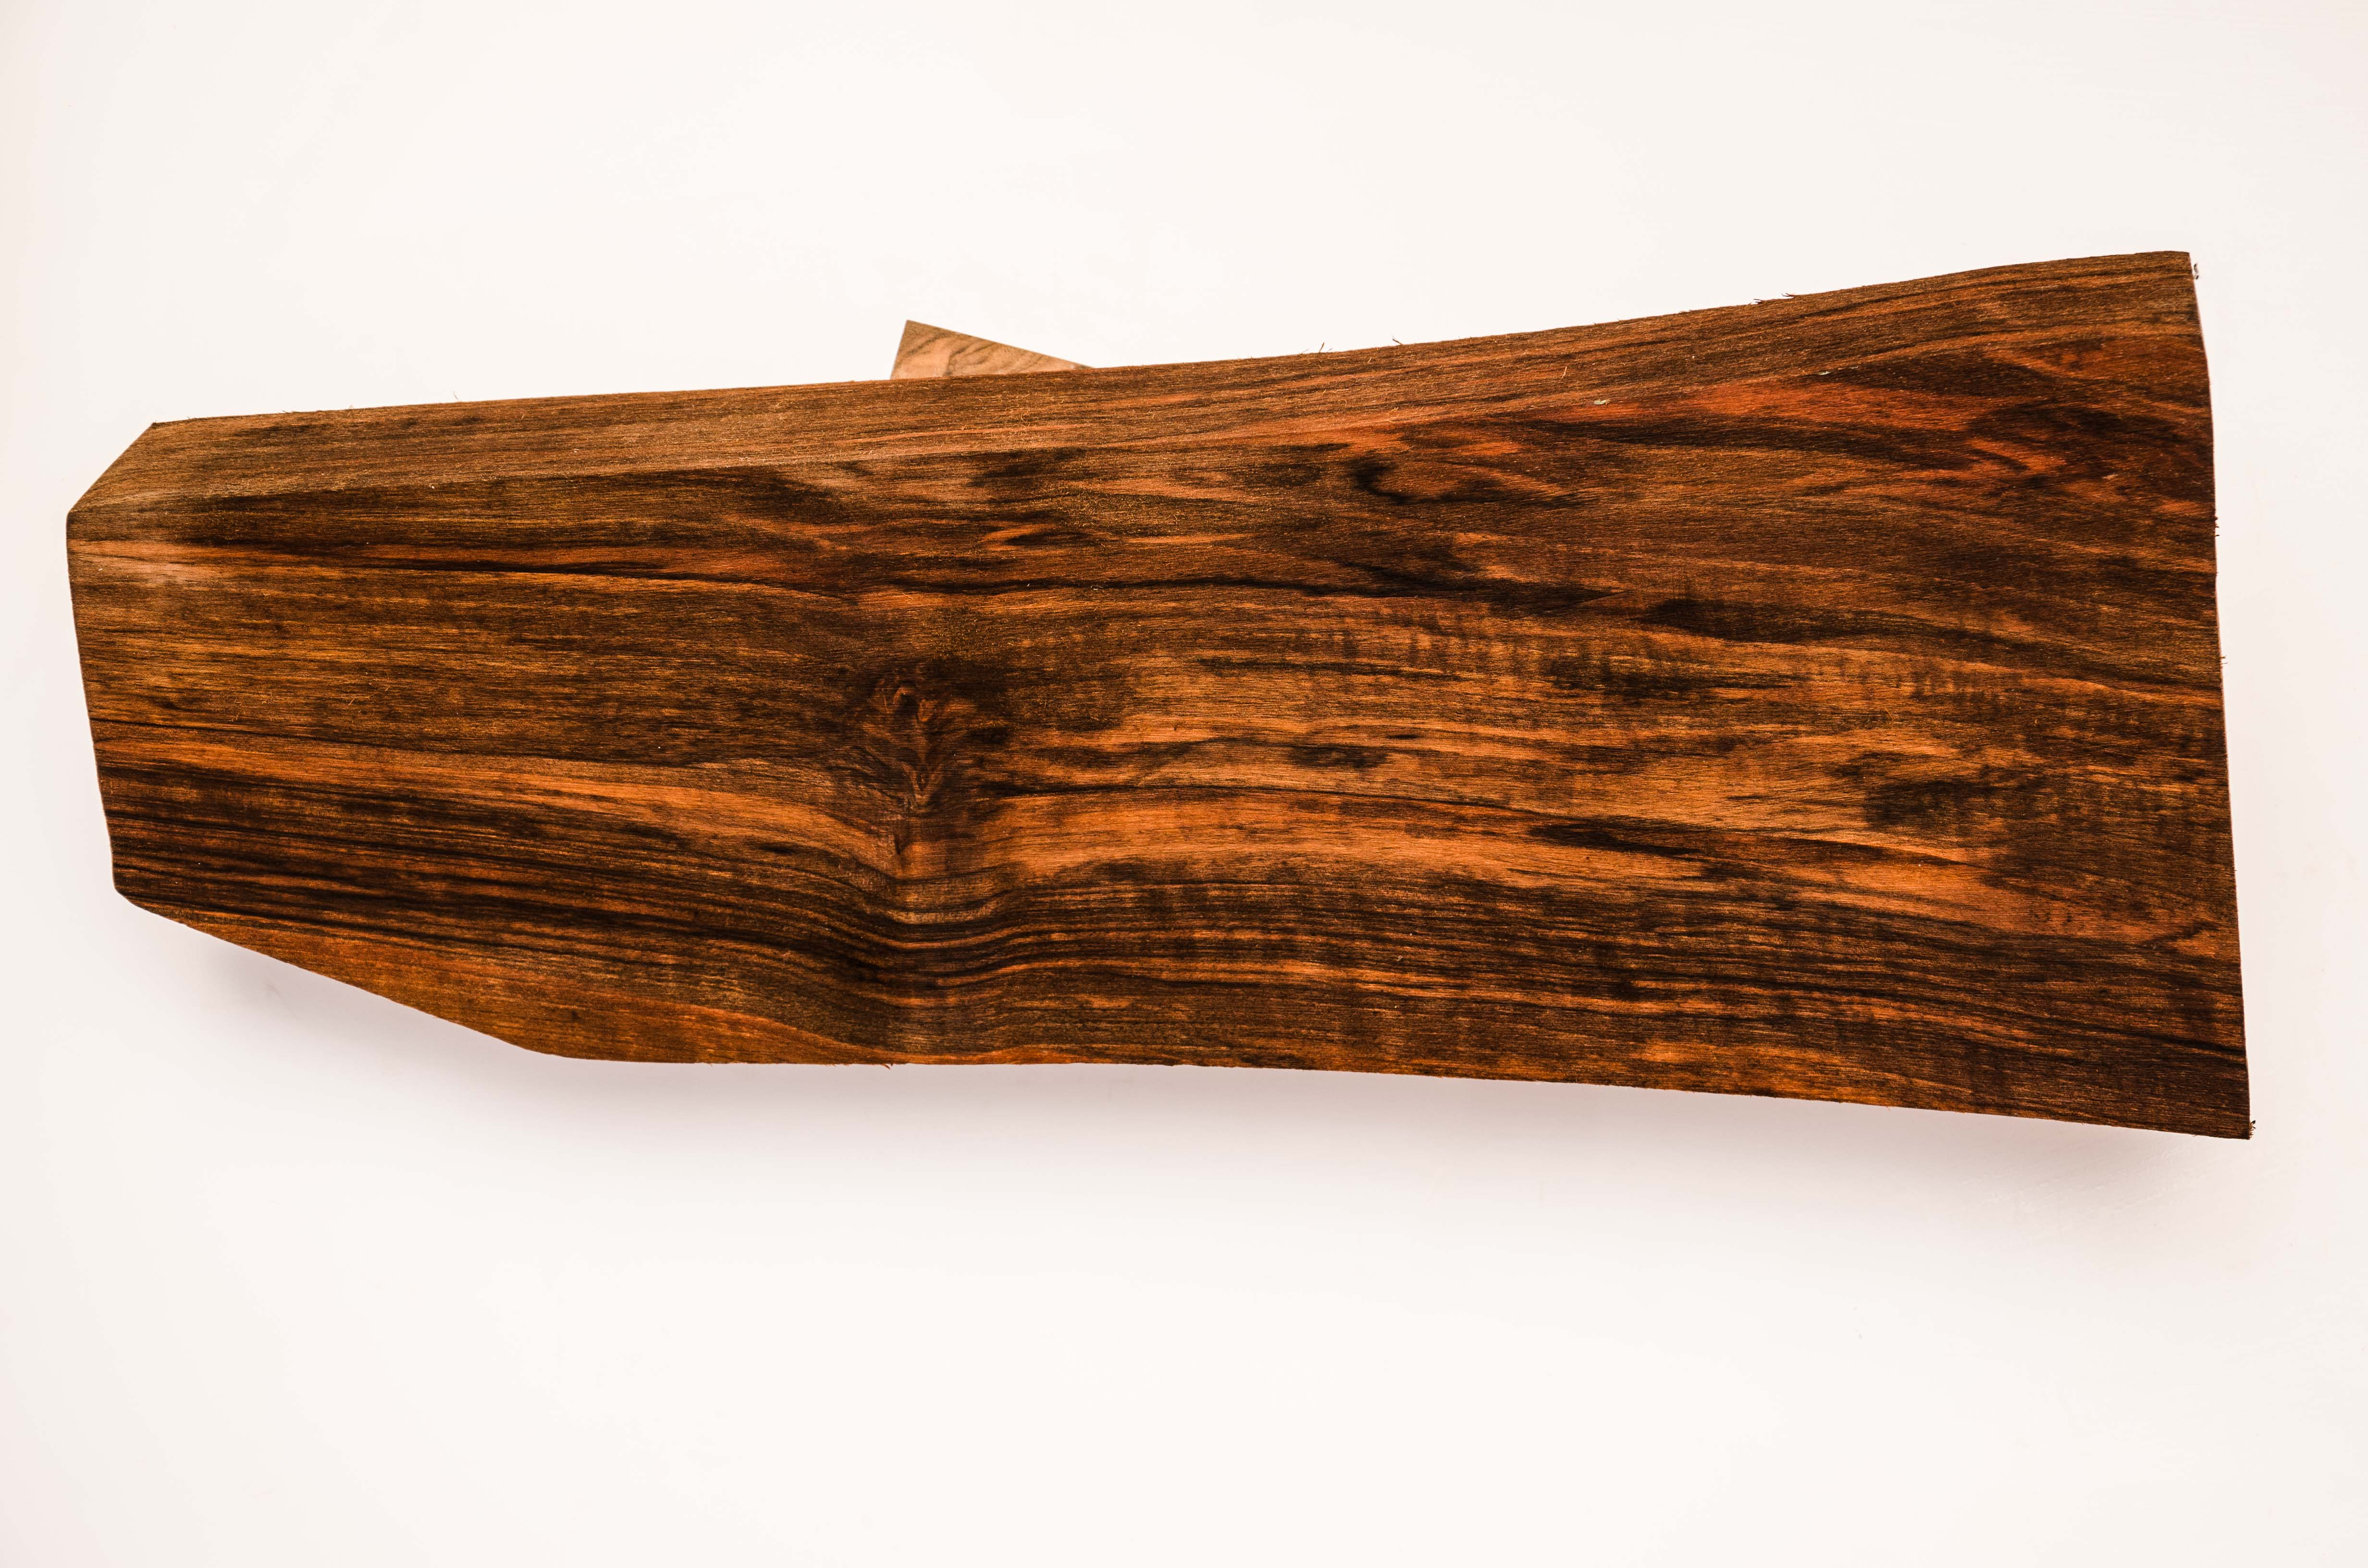 walnut_stock_blanks_for_guns_and_rifles-0537